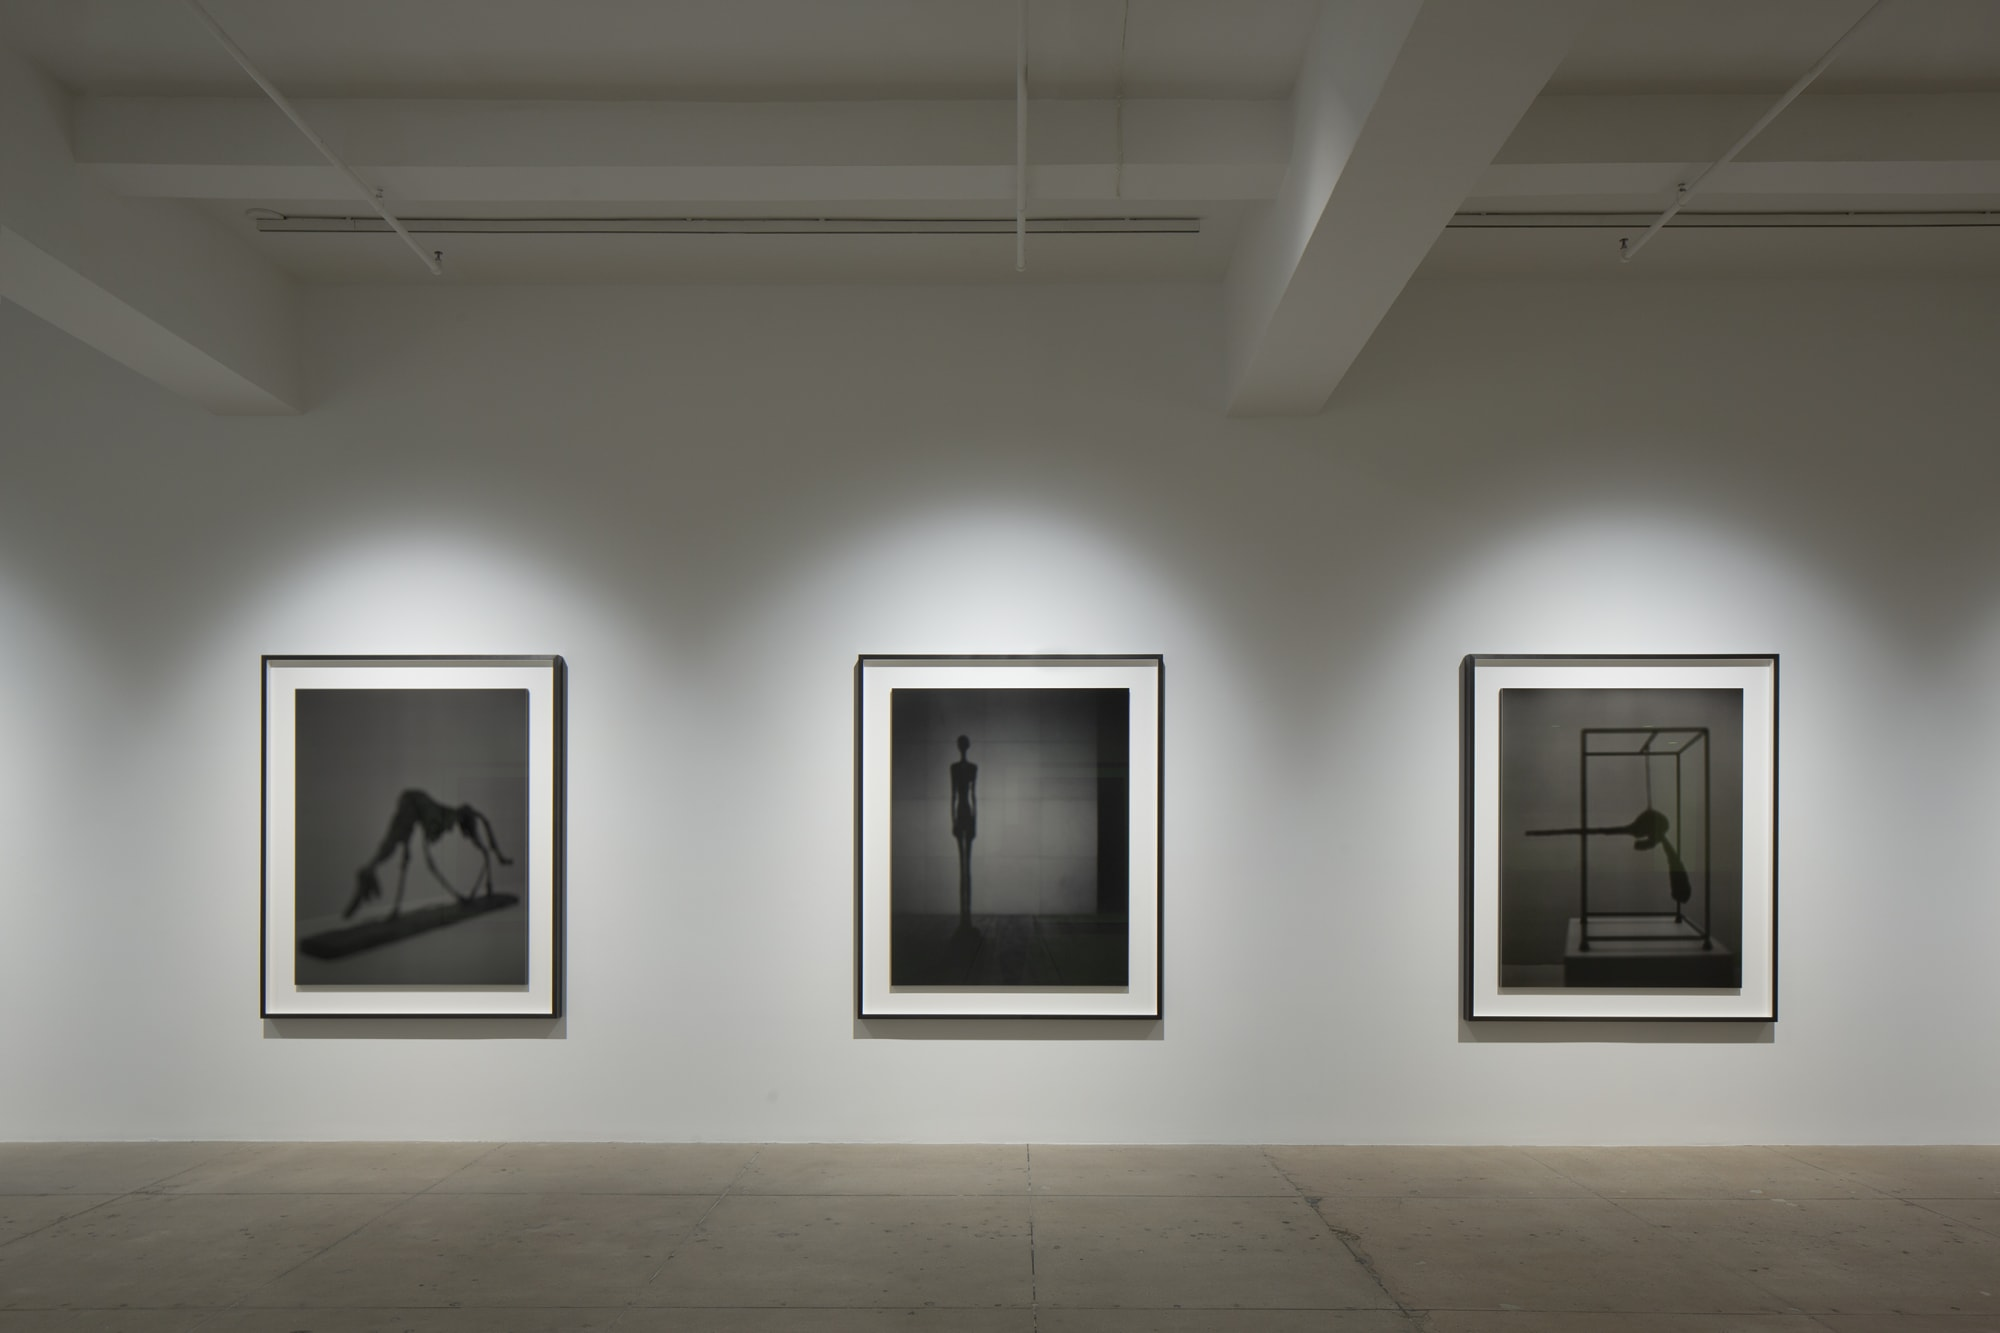 Gallery view of three black and white photos of art objects from a museum on a wall.